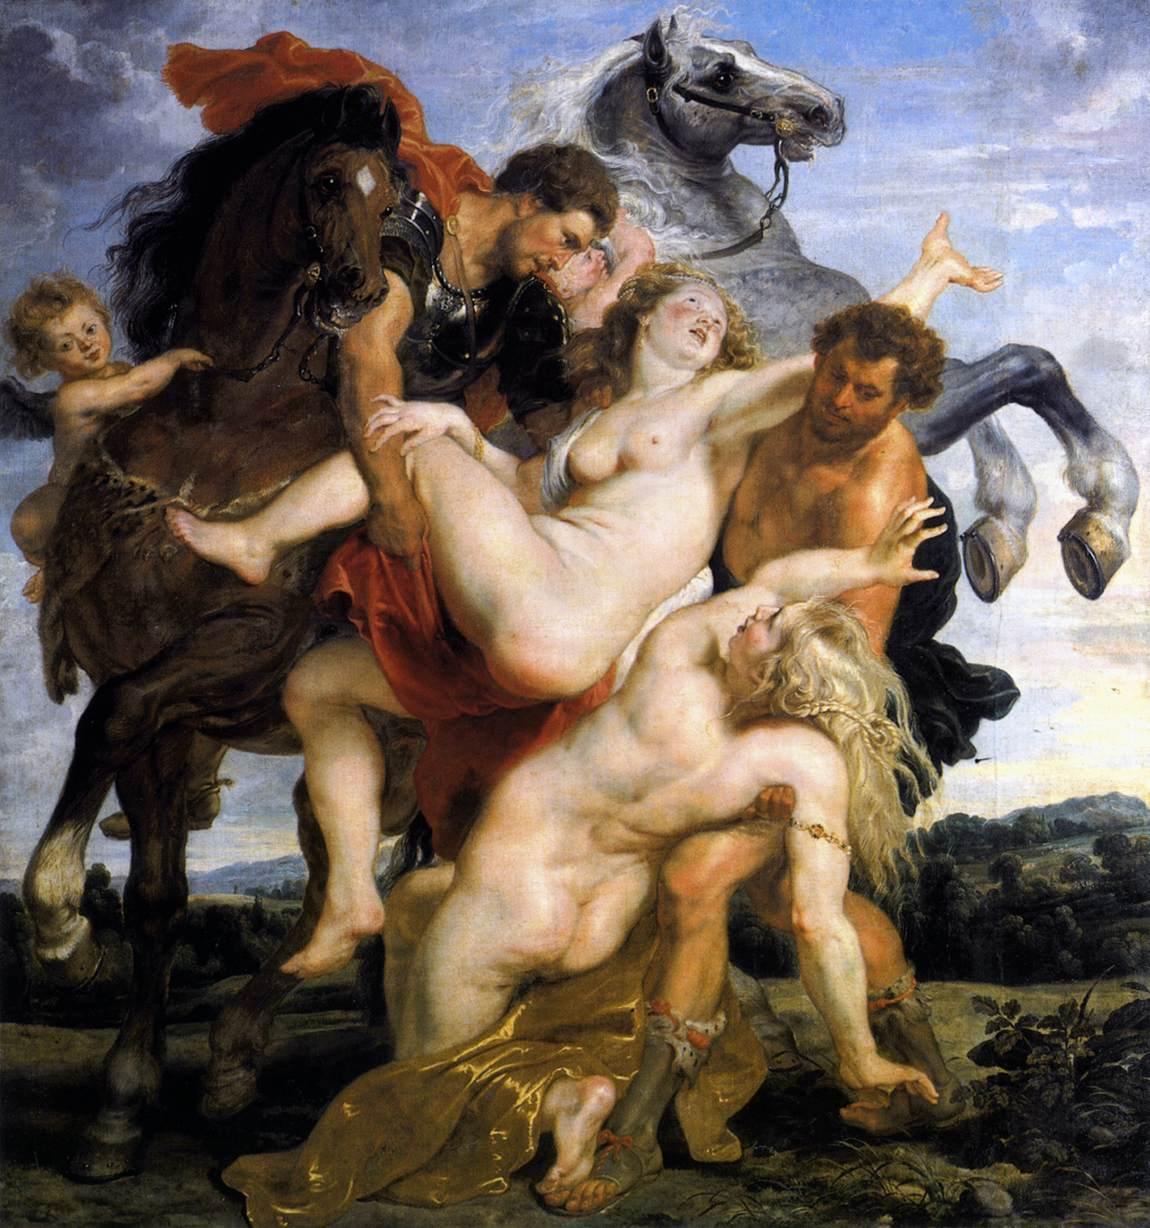 Rape of the Daughters of Leucippus by Peter Paul Rubens